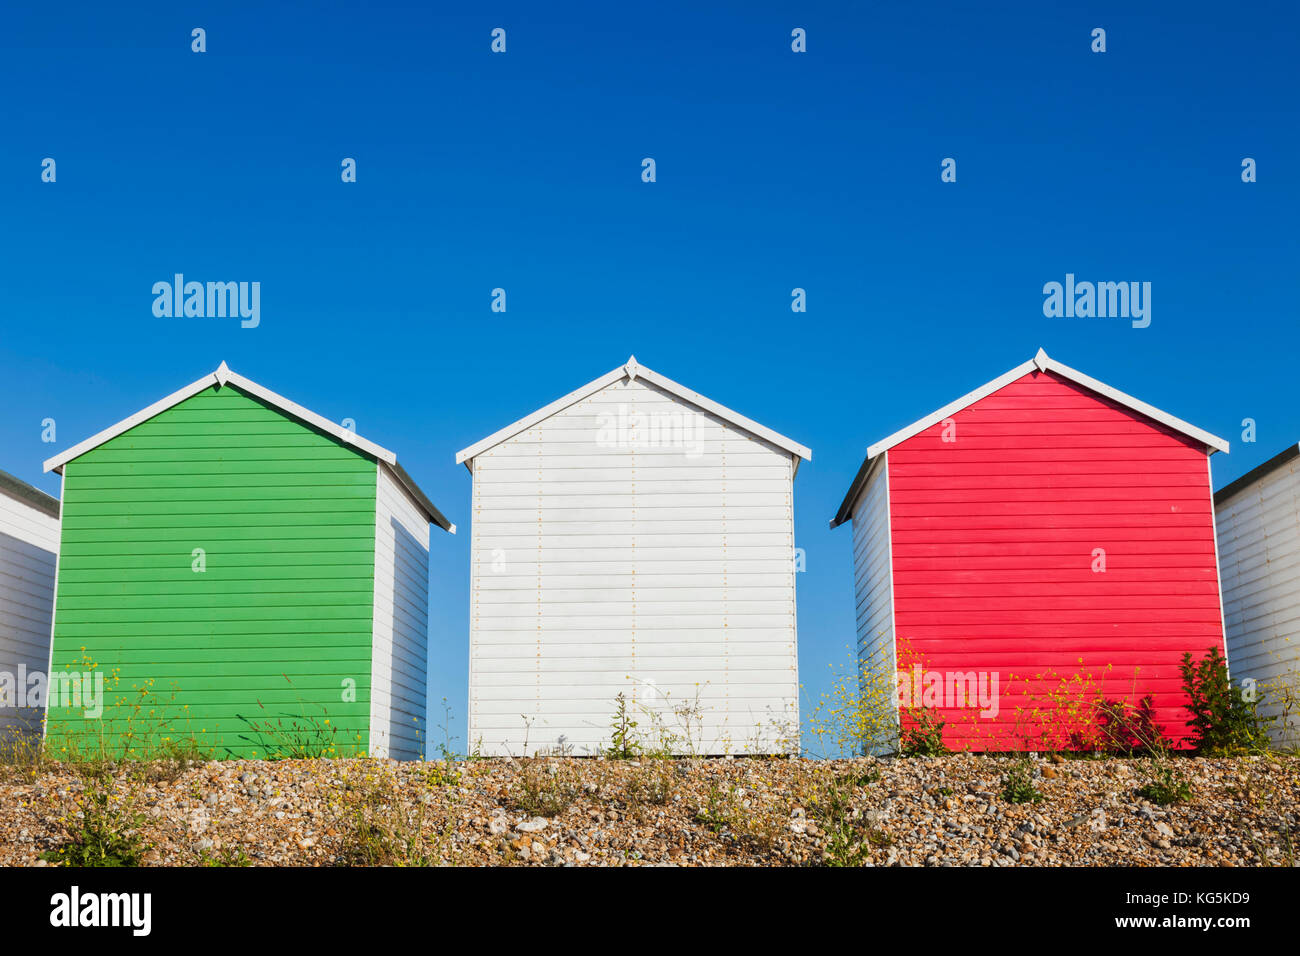 England, East Sussex, Eastbourne, Eastbourne Beach, Colourful Beach Huts - Stock Image